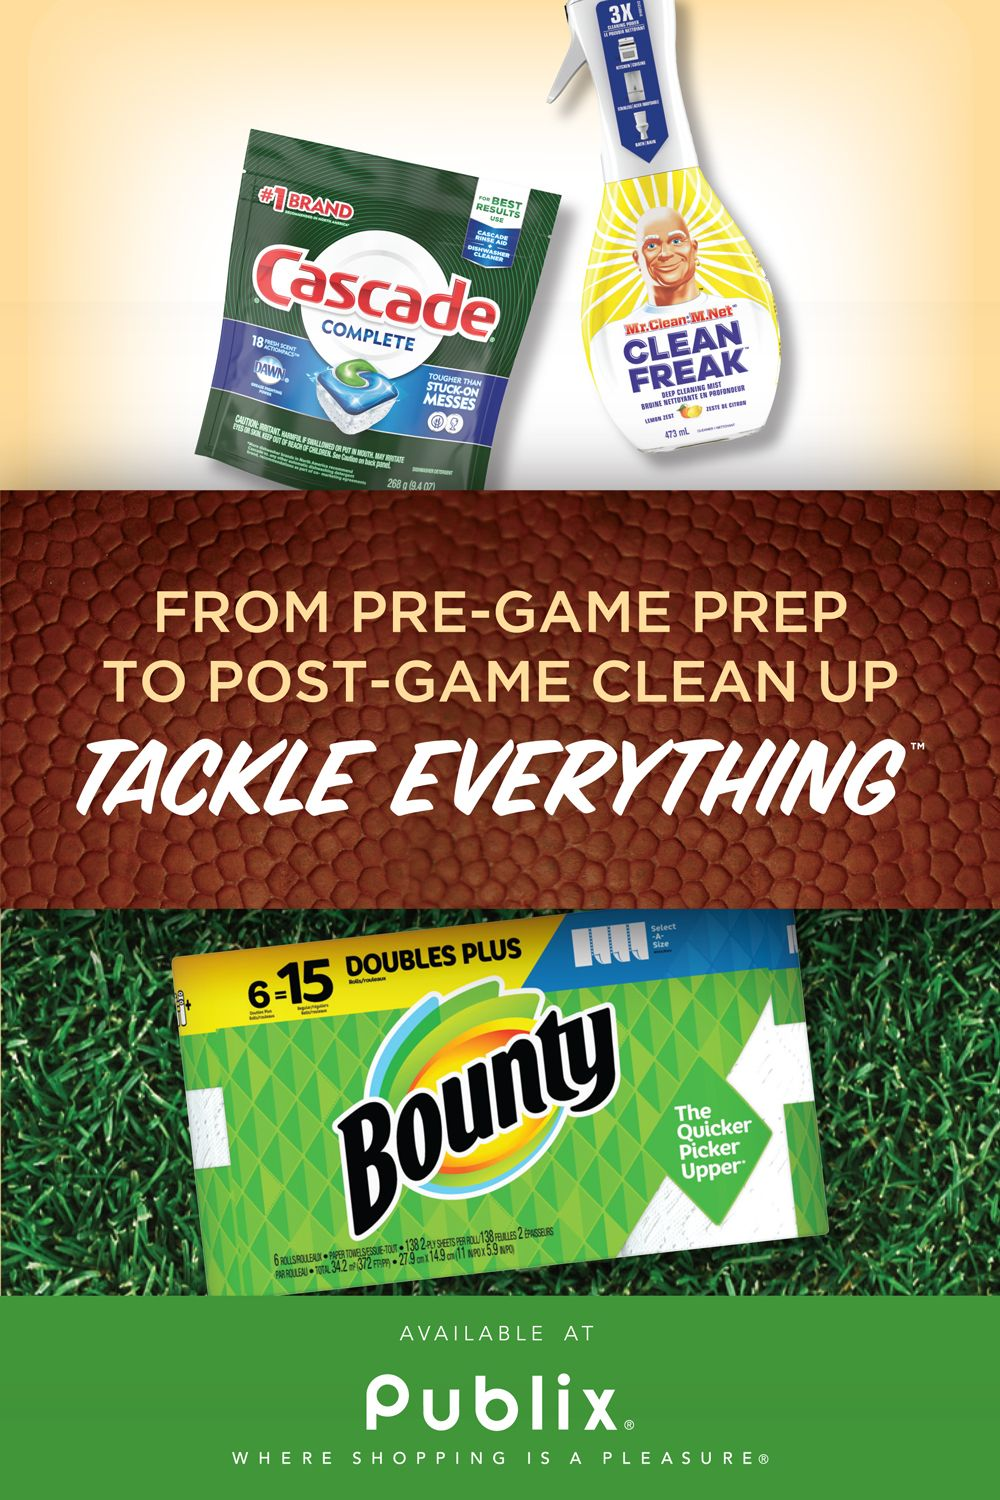 Find BIG Savings on your favorite BIG Game Essentials